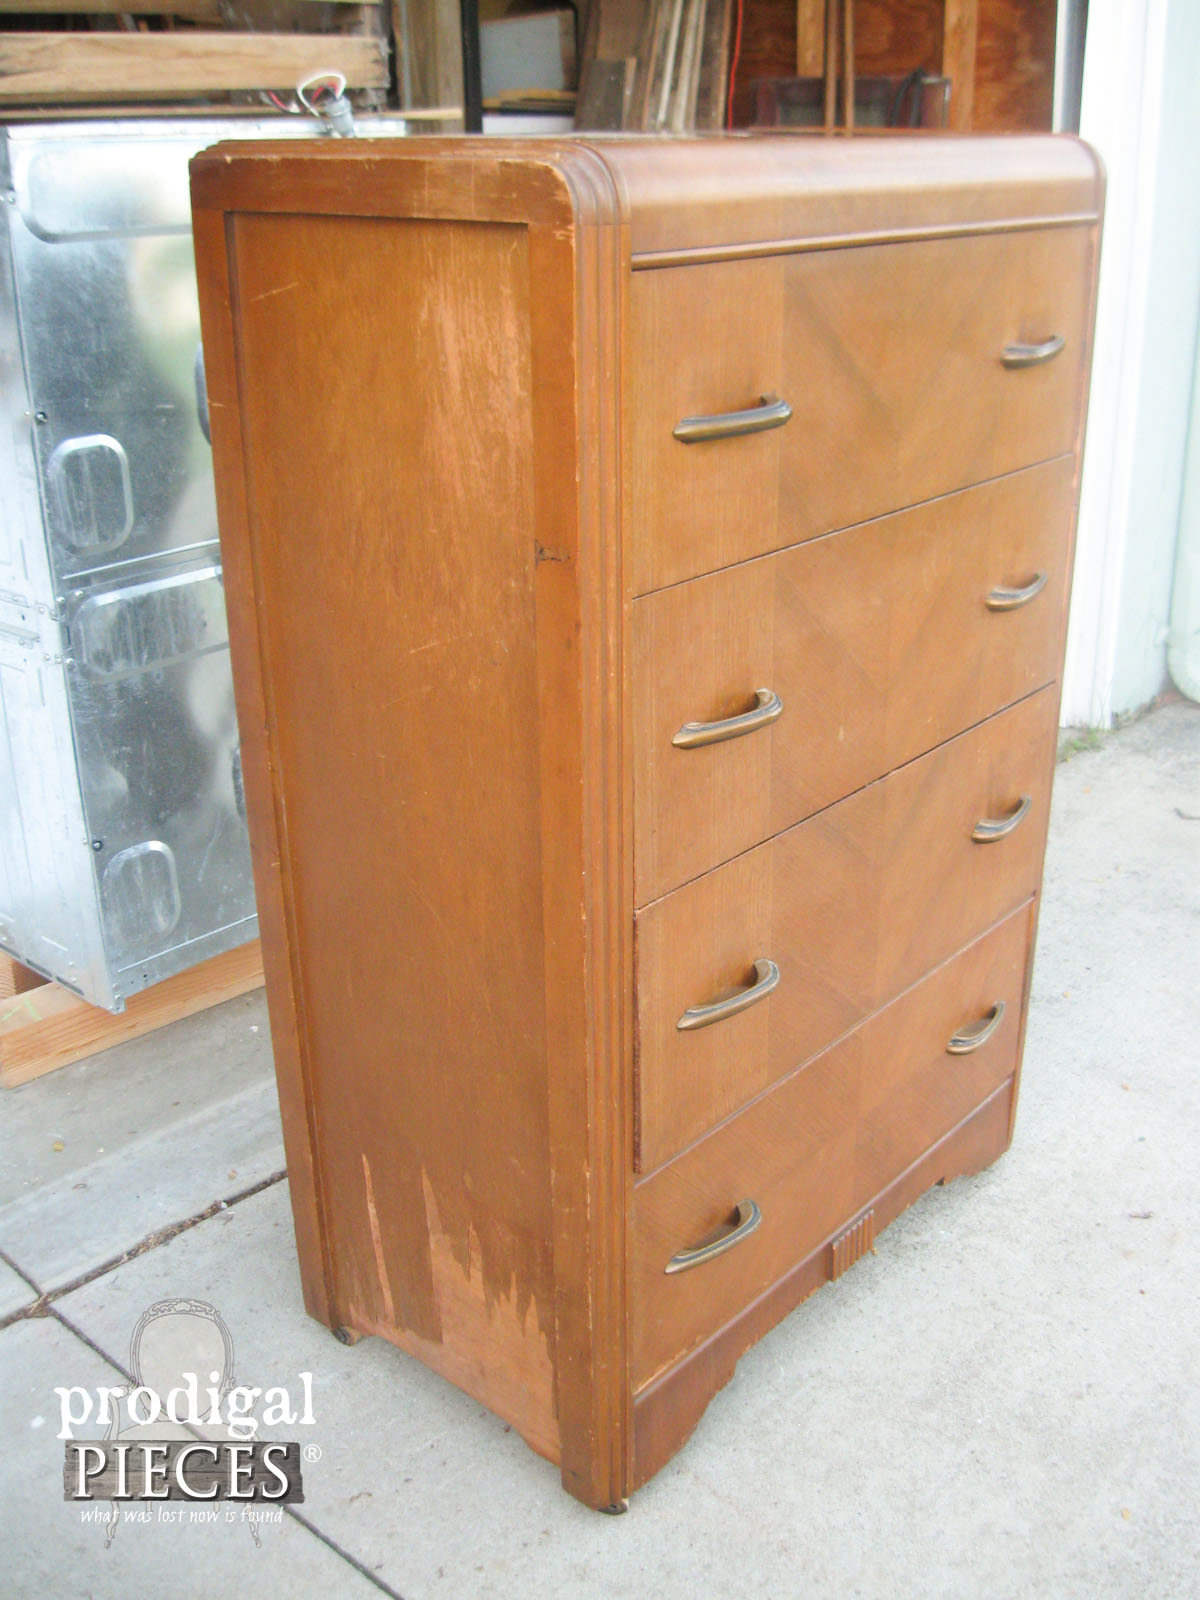 Right Side of Art Deco Chest of Drawers | Prodigal Pieces | www.prodigalpieces.com